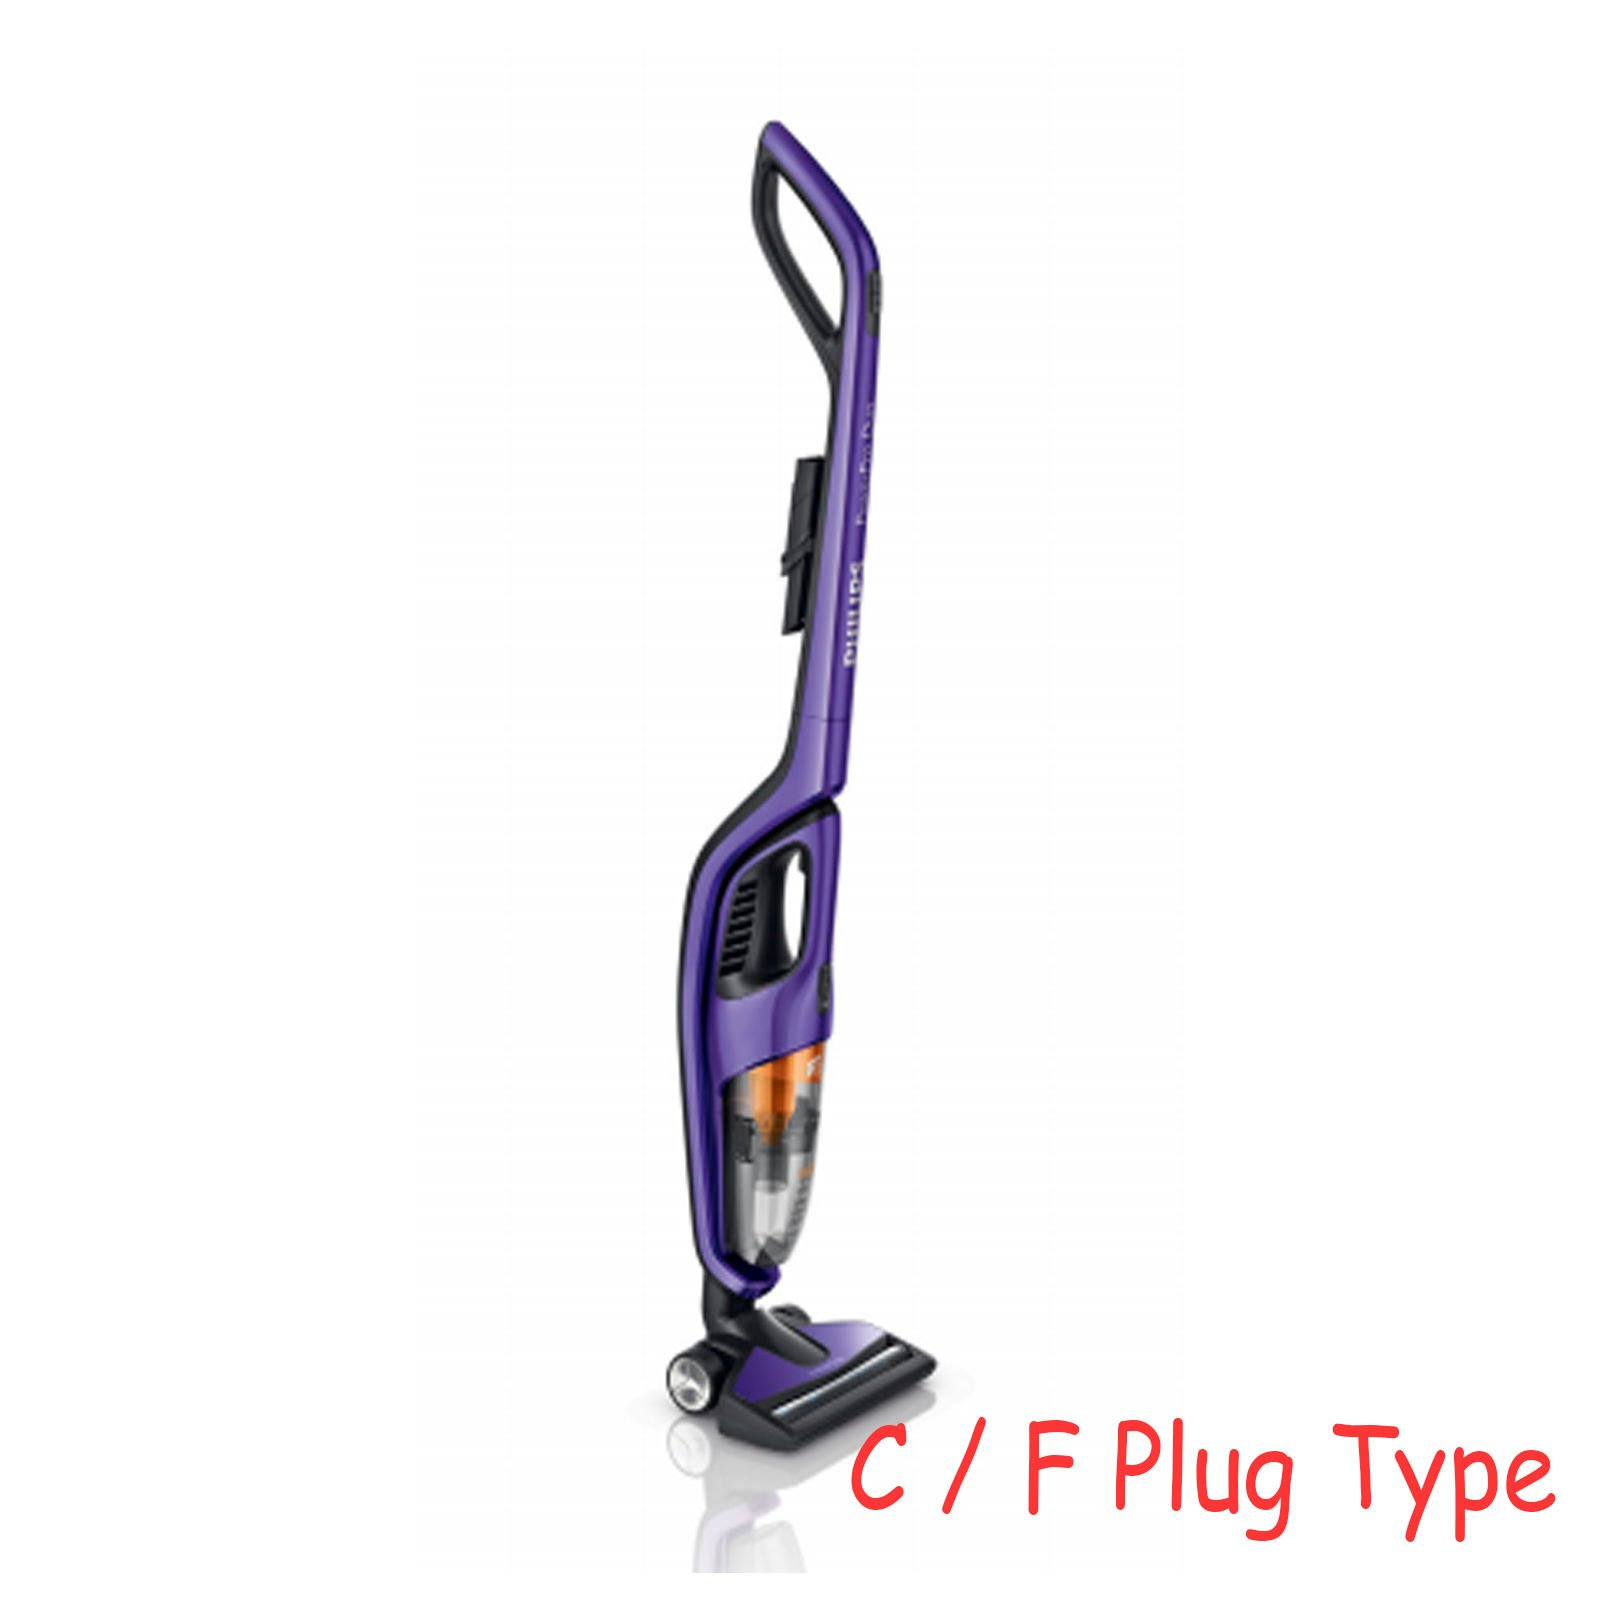 NEW Philips FC6166/01 Power Pro Duo 2-in-1 Hand Stick Cordless Vacuum Cleaner by Philips